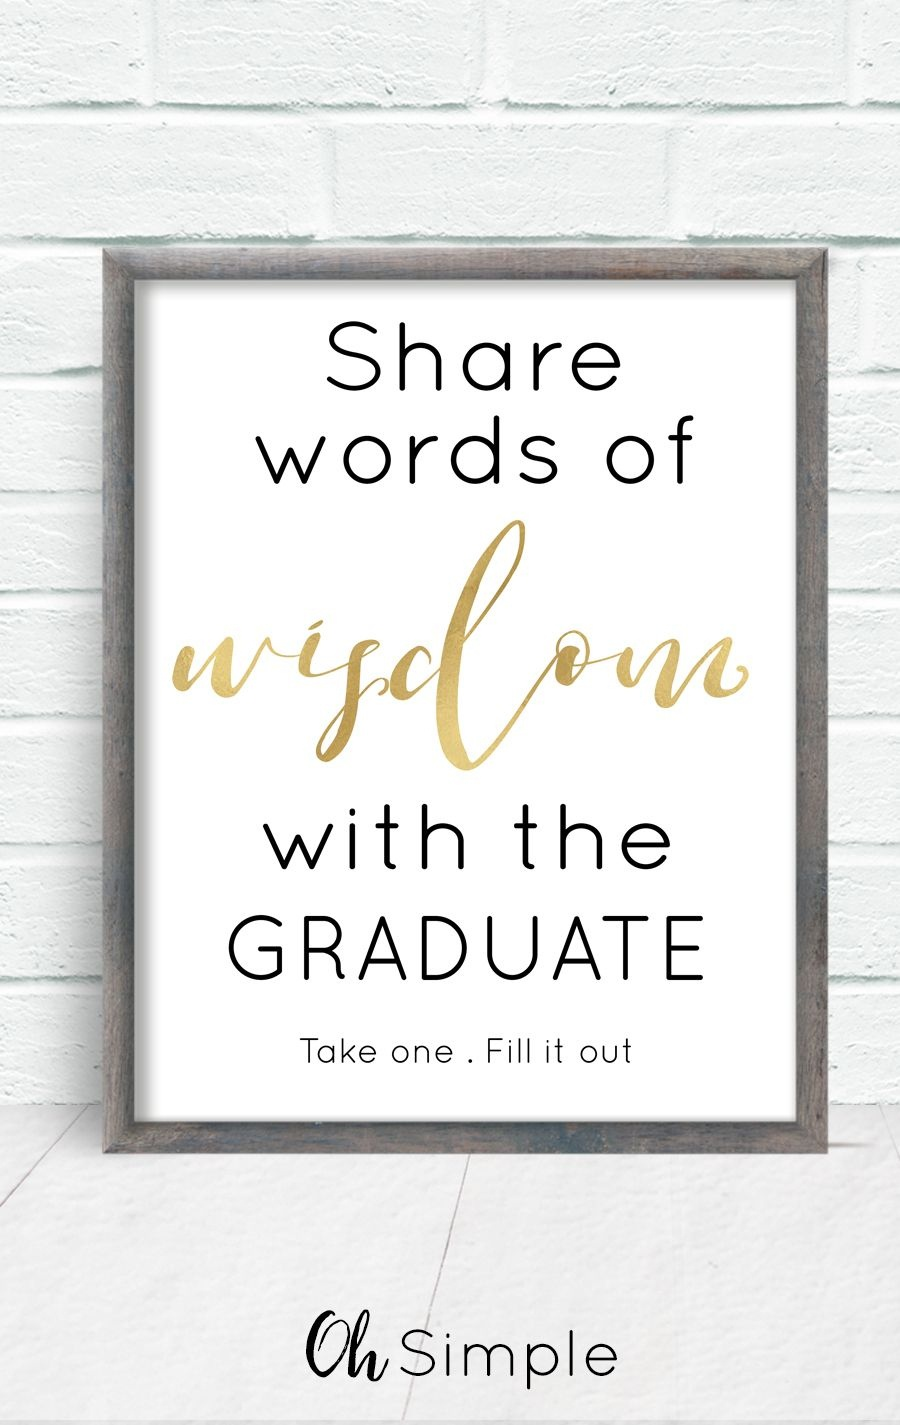 Free Printable Graduation Sign With The Purchase Of Words Of Wisdom - Free Printable Graduation Advice Cards